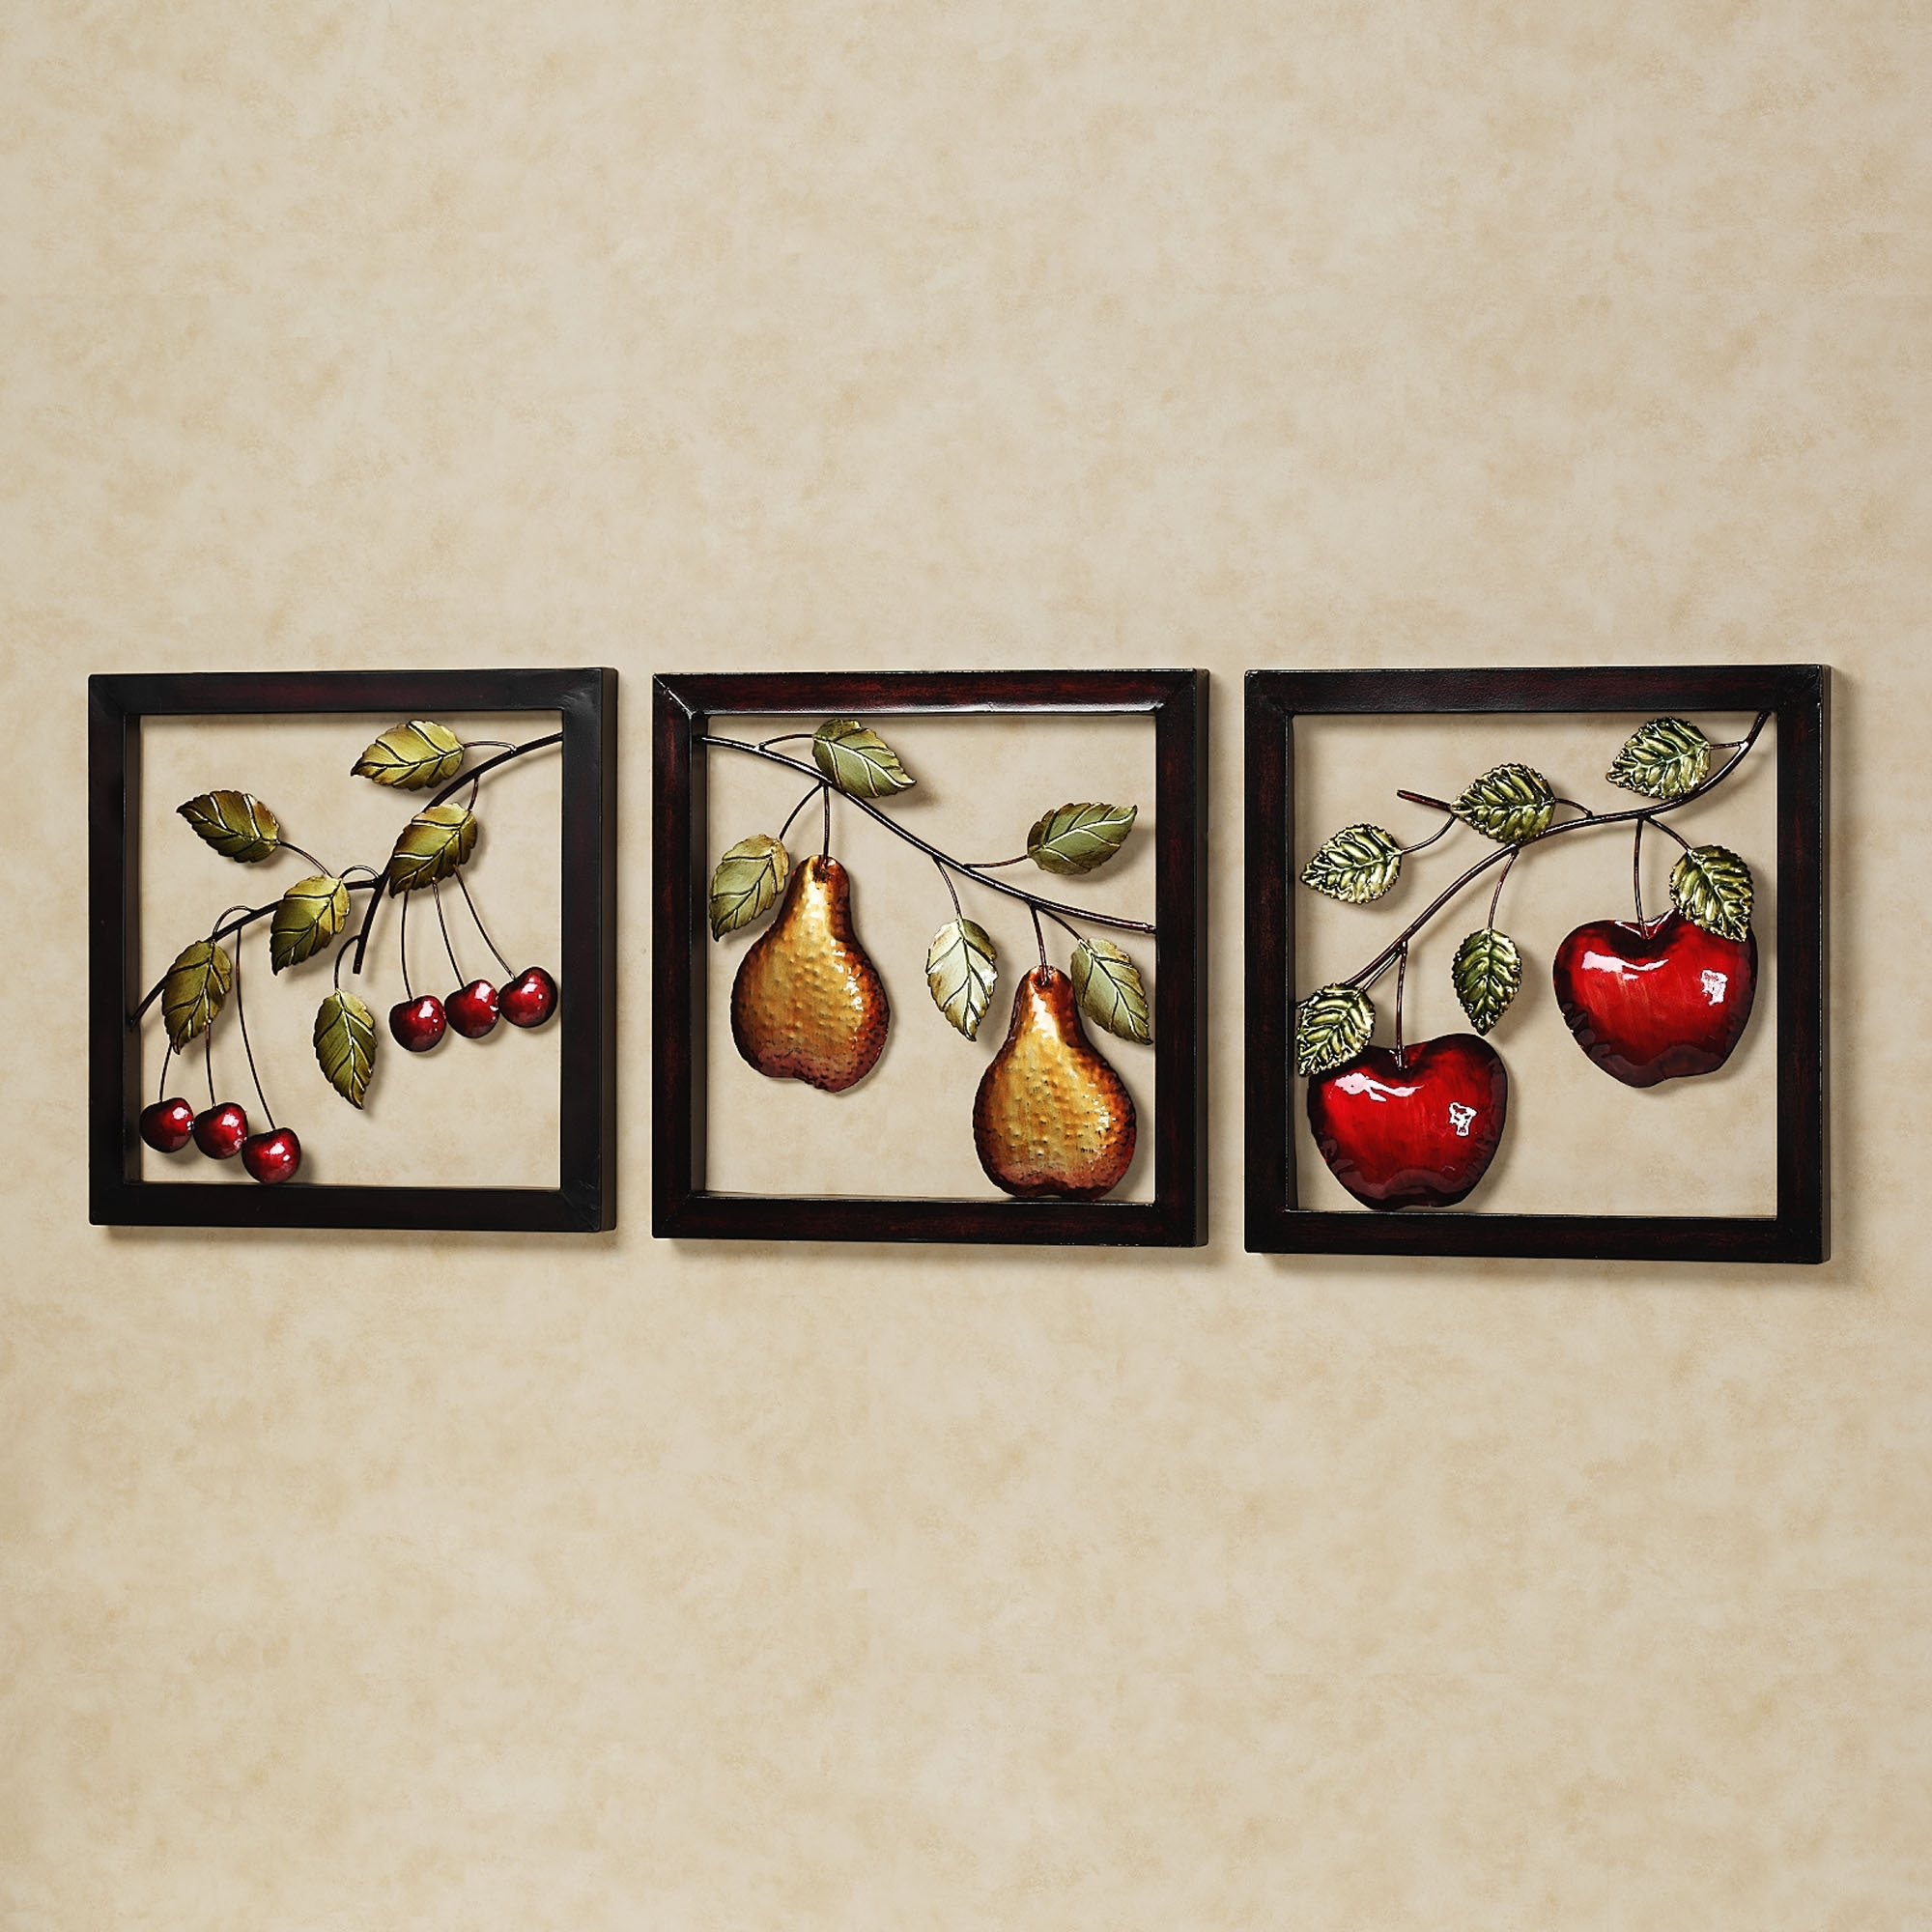 Wall Art For Kitchen Regarding Well Known Beautiful Fruits Metal Wall Art Decor Kitchen With Black Frame Ideas (View 9 of 15)